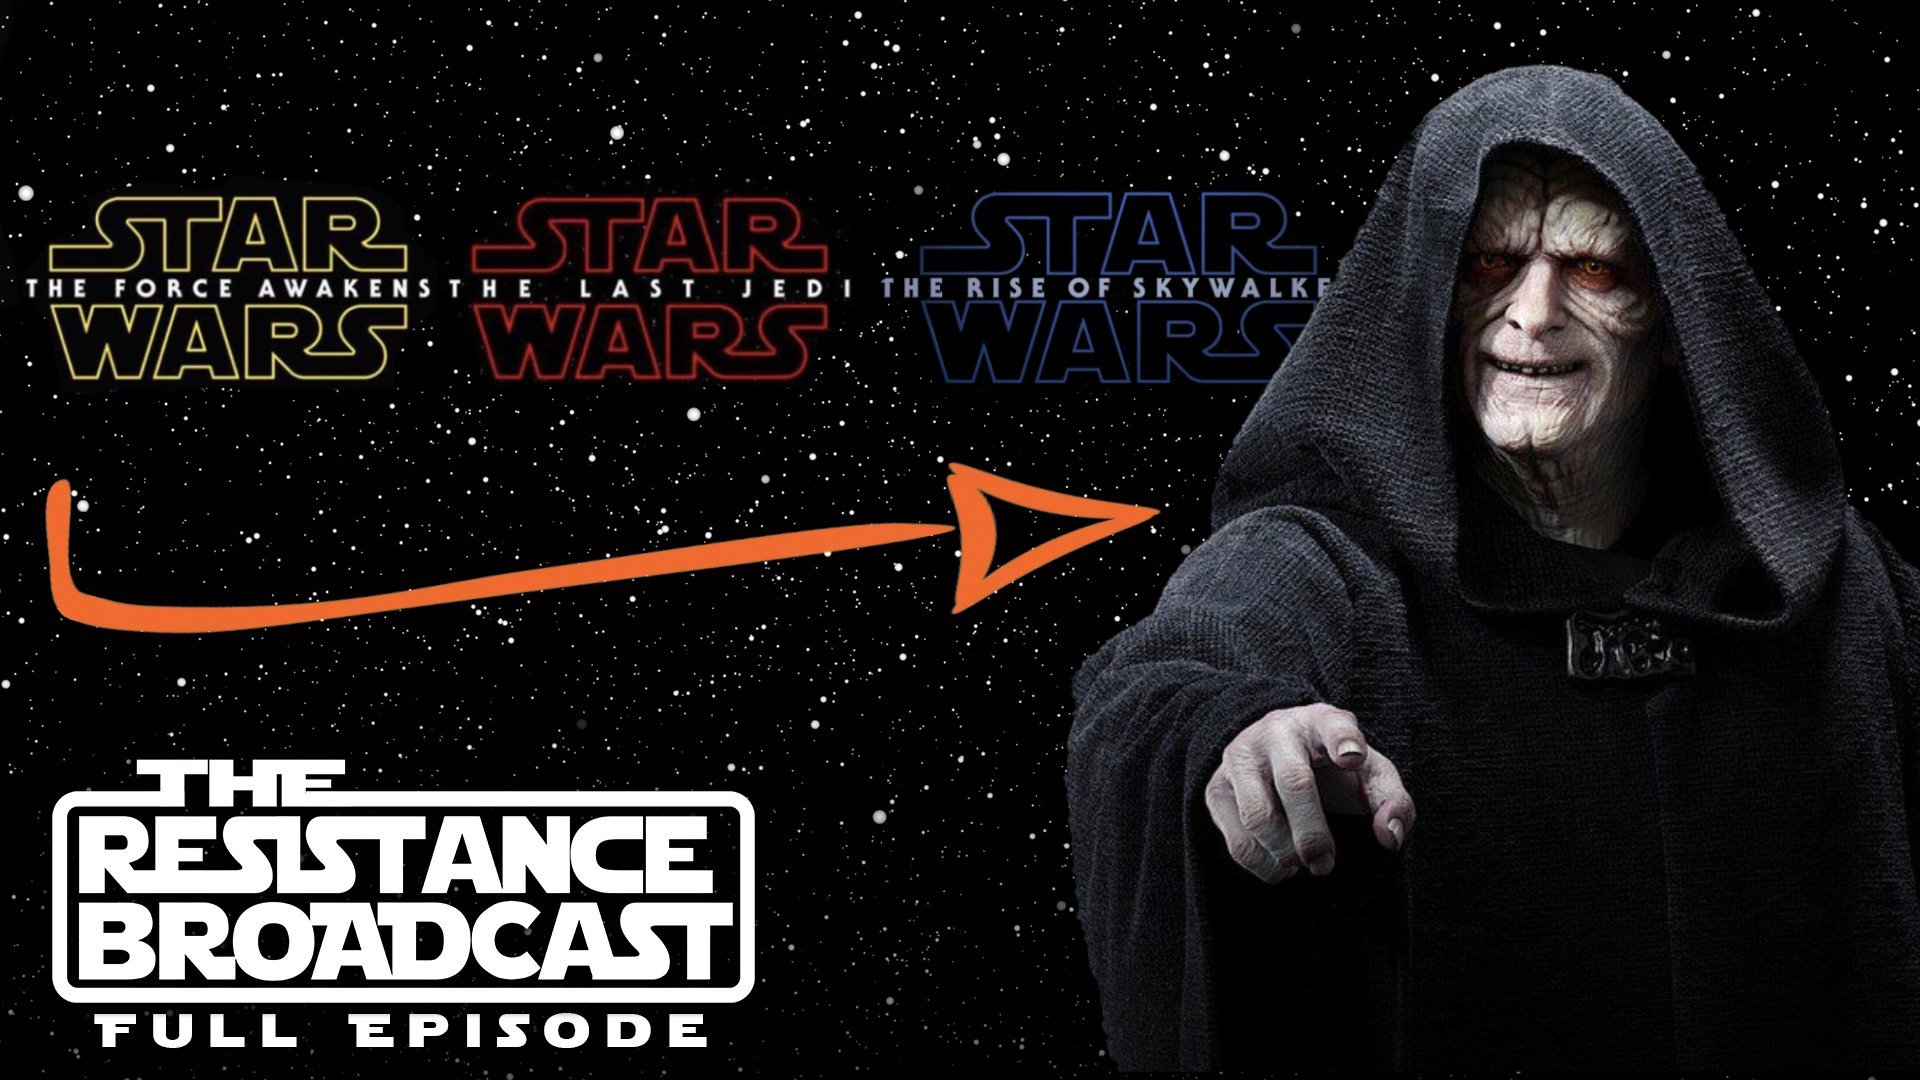 The Resistance Broadcast Palpatine Was Part Of Star Wars Sequel Trilogy Plans All Along Star Wars News Net